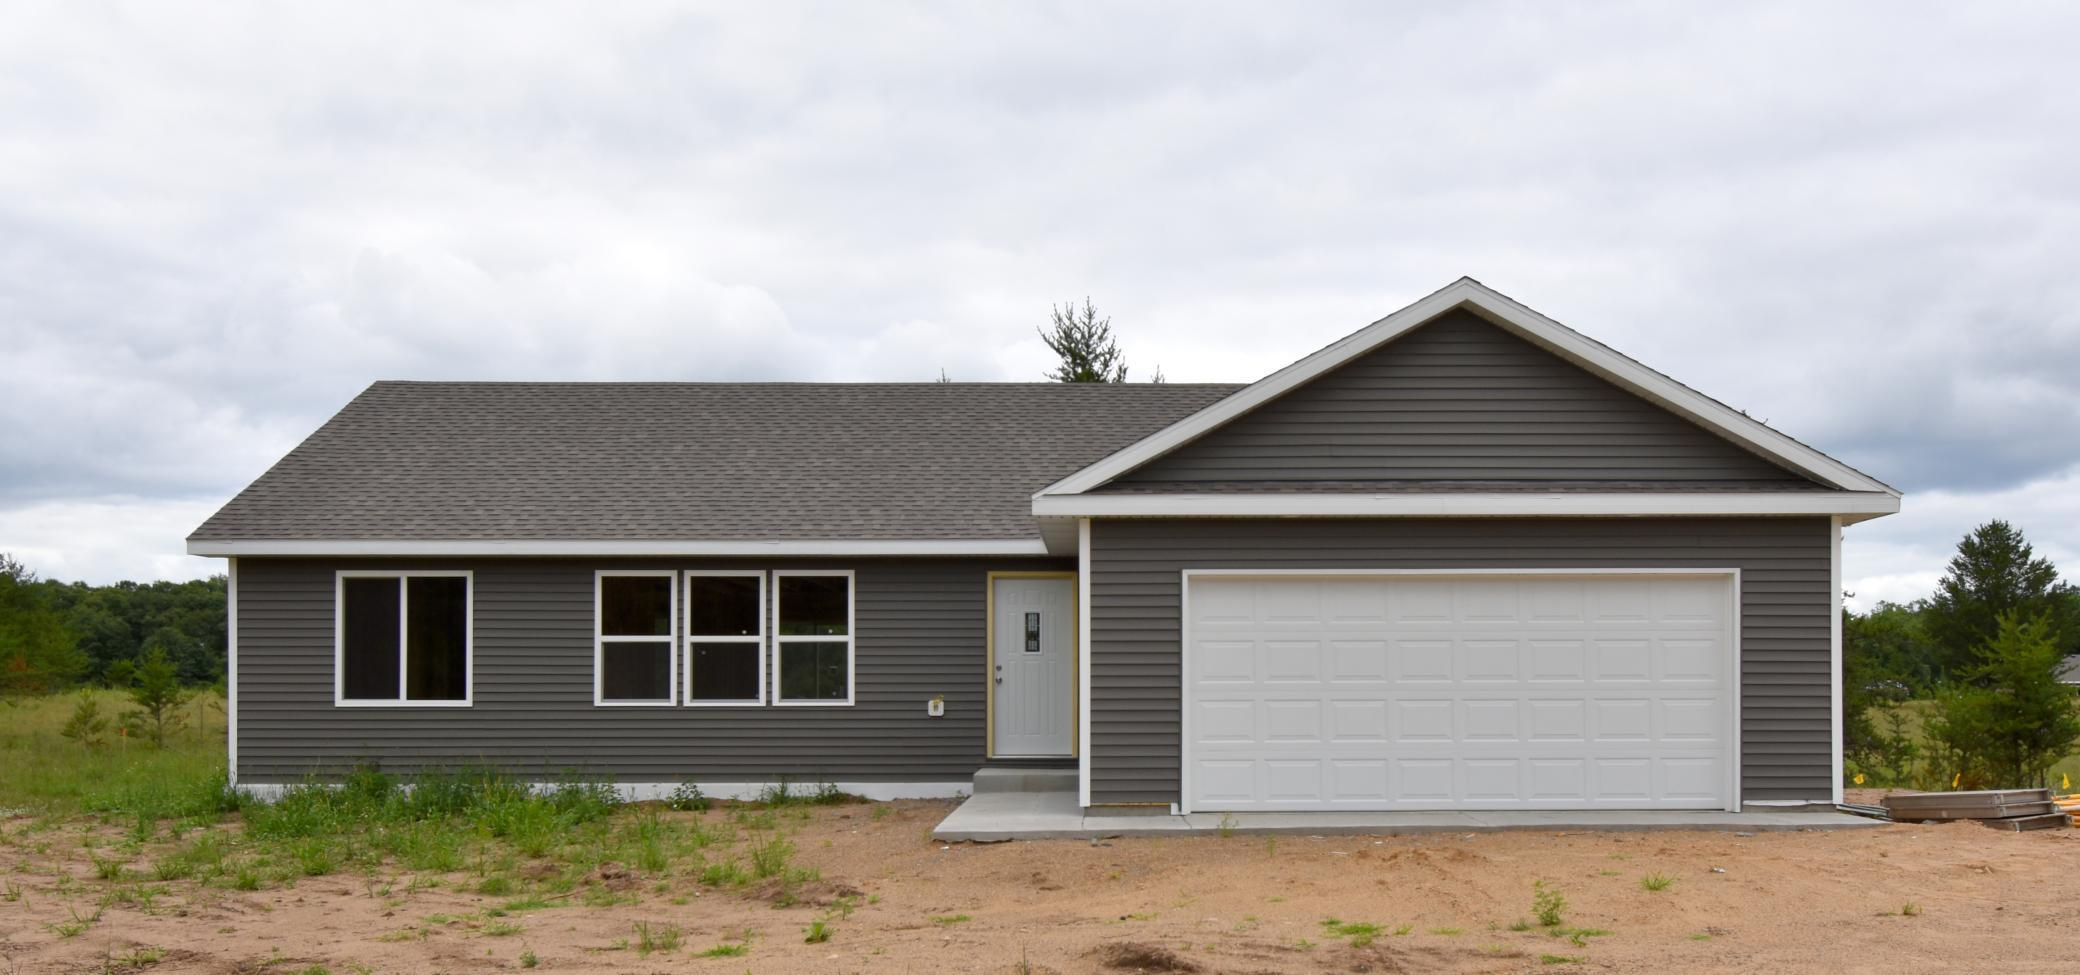 9176 1st Property Photo - Breezy Point, MN real estate listing